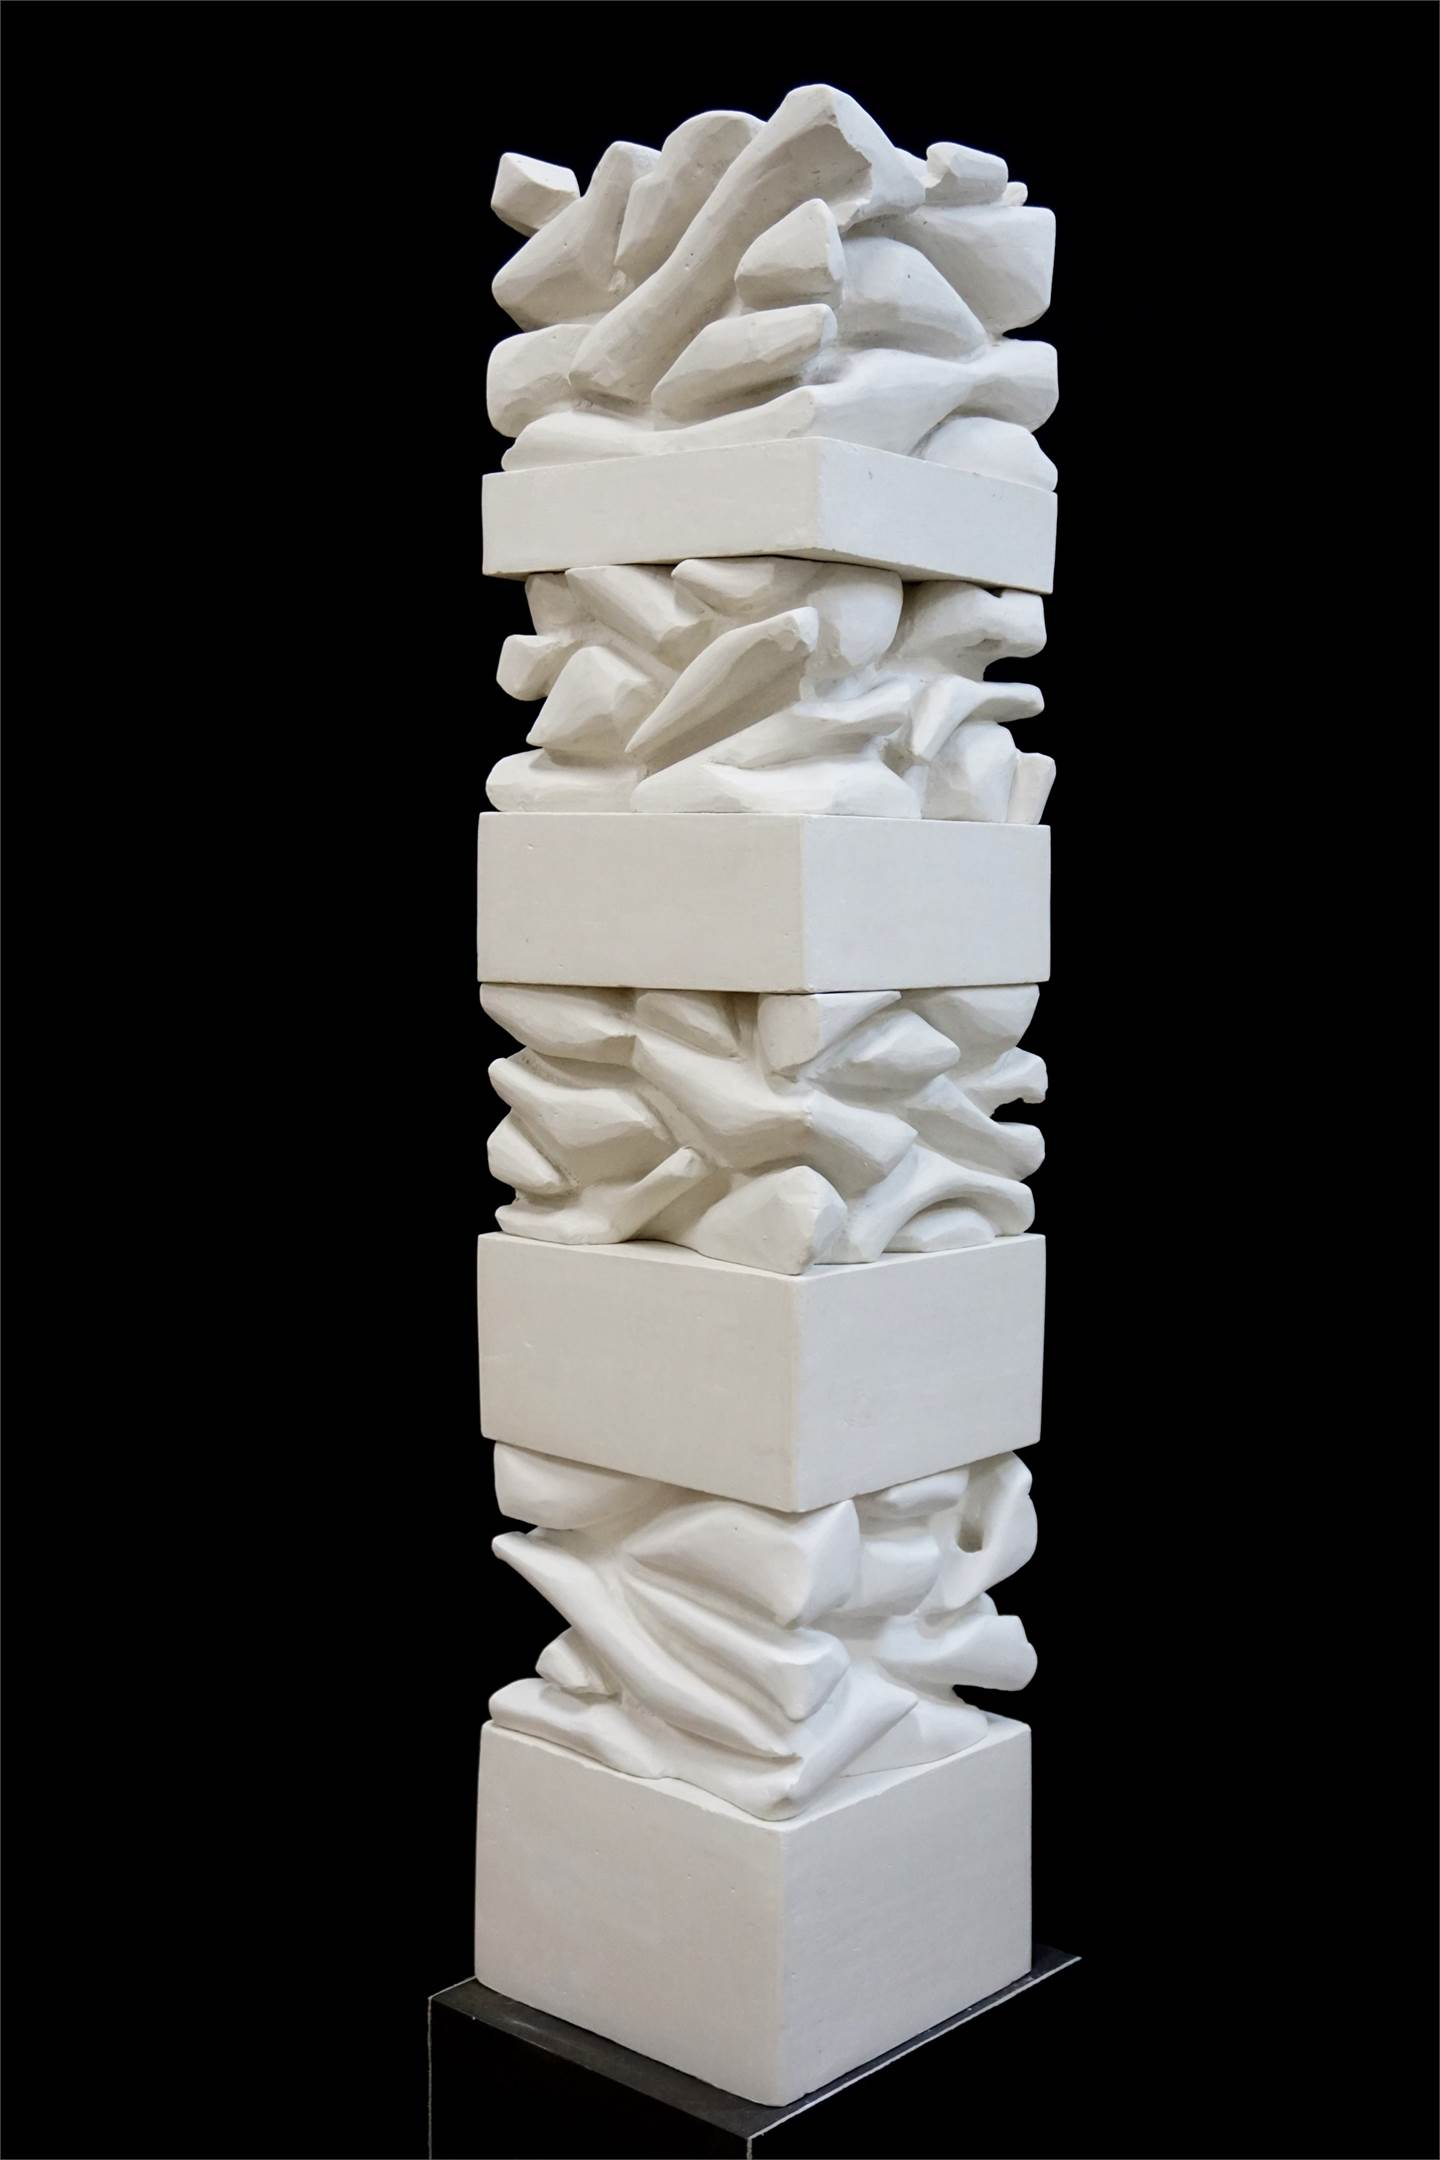 Estratos de Pensamento II, original Abstract Plaster Sculpture by Jéssica Burrinha